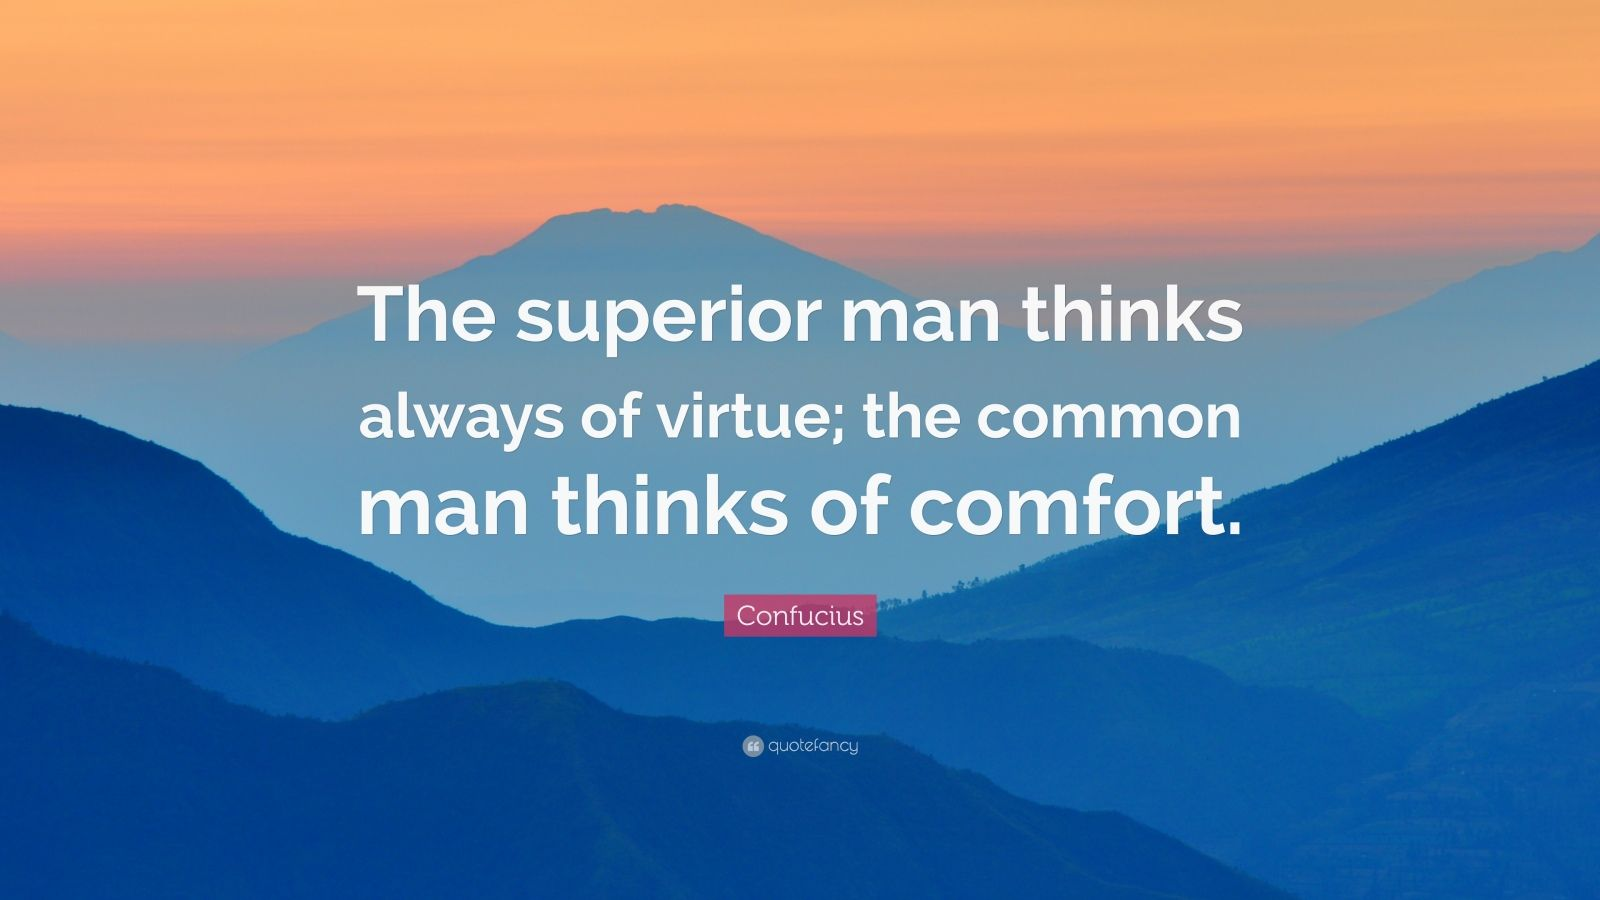 confucius and virtue